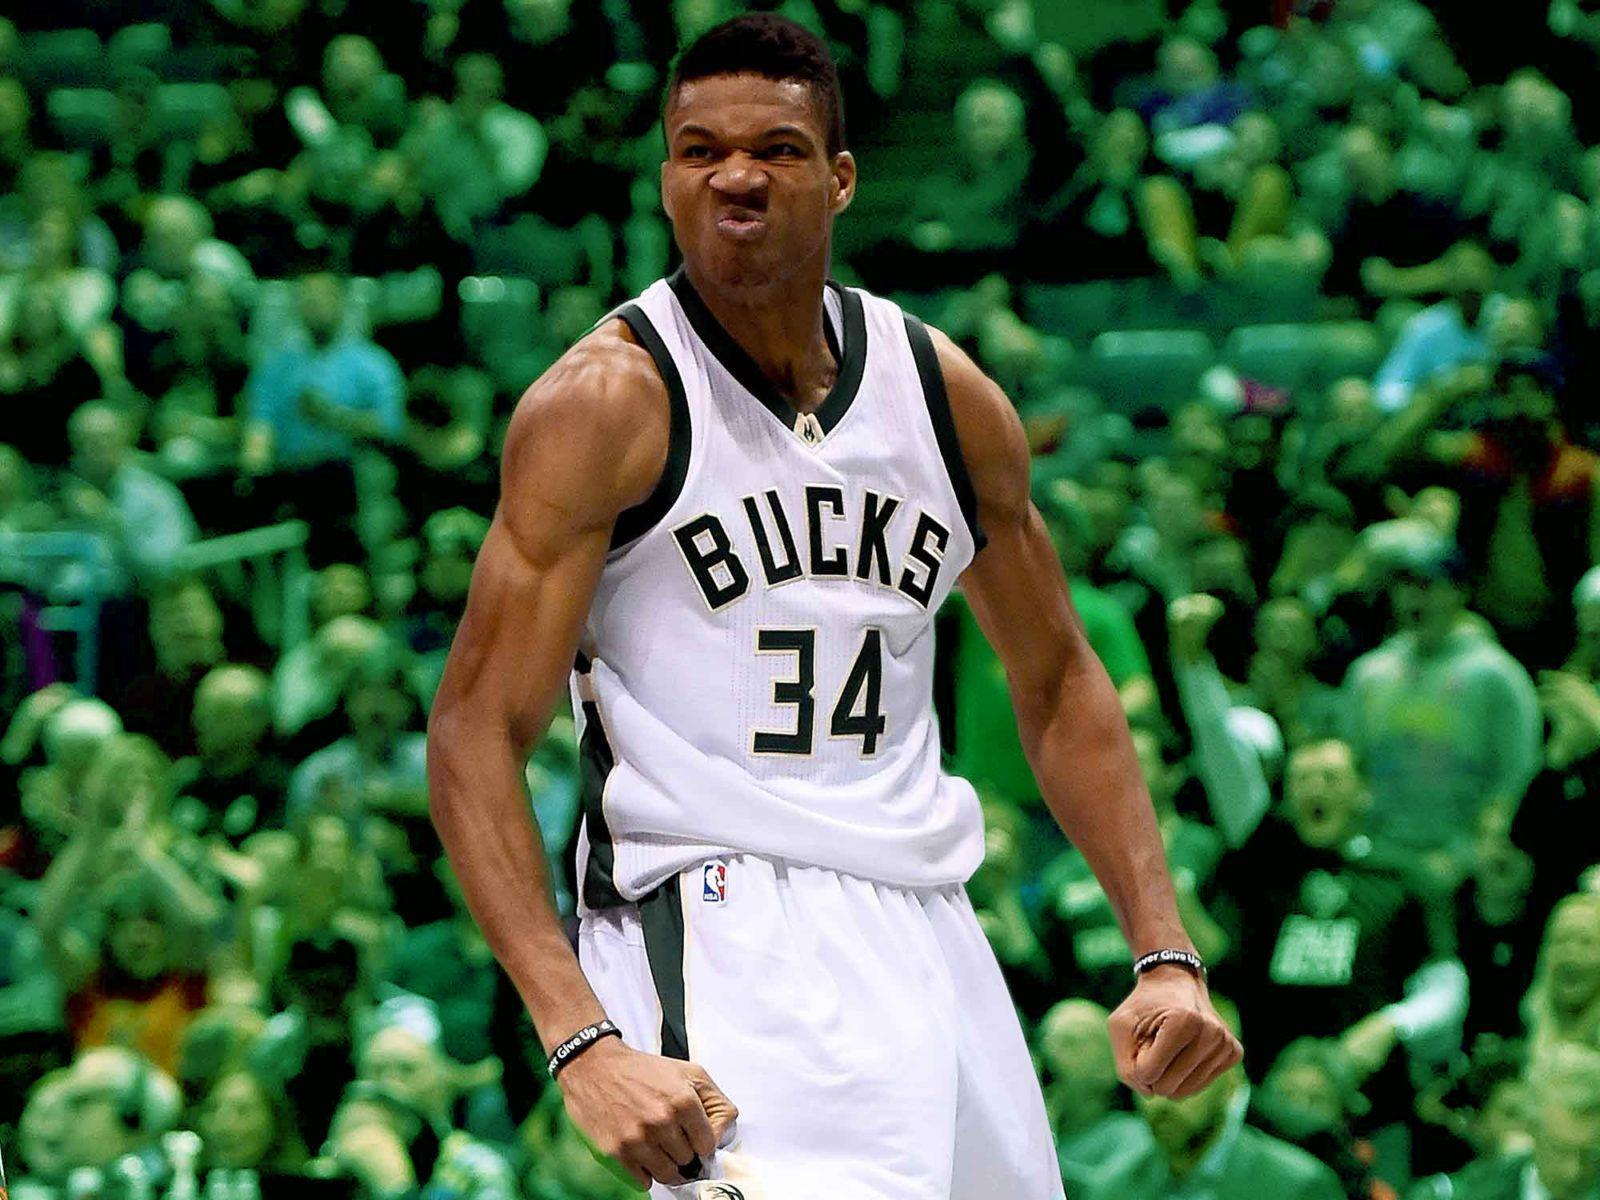 Giannis Antetokounmpo – The 6th Man